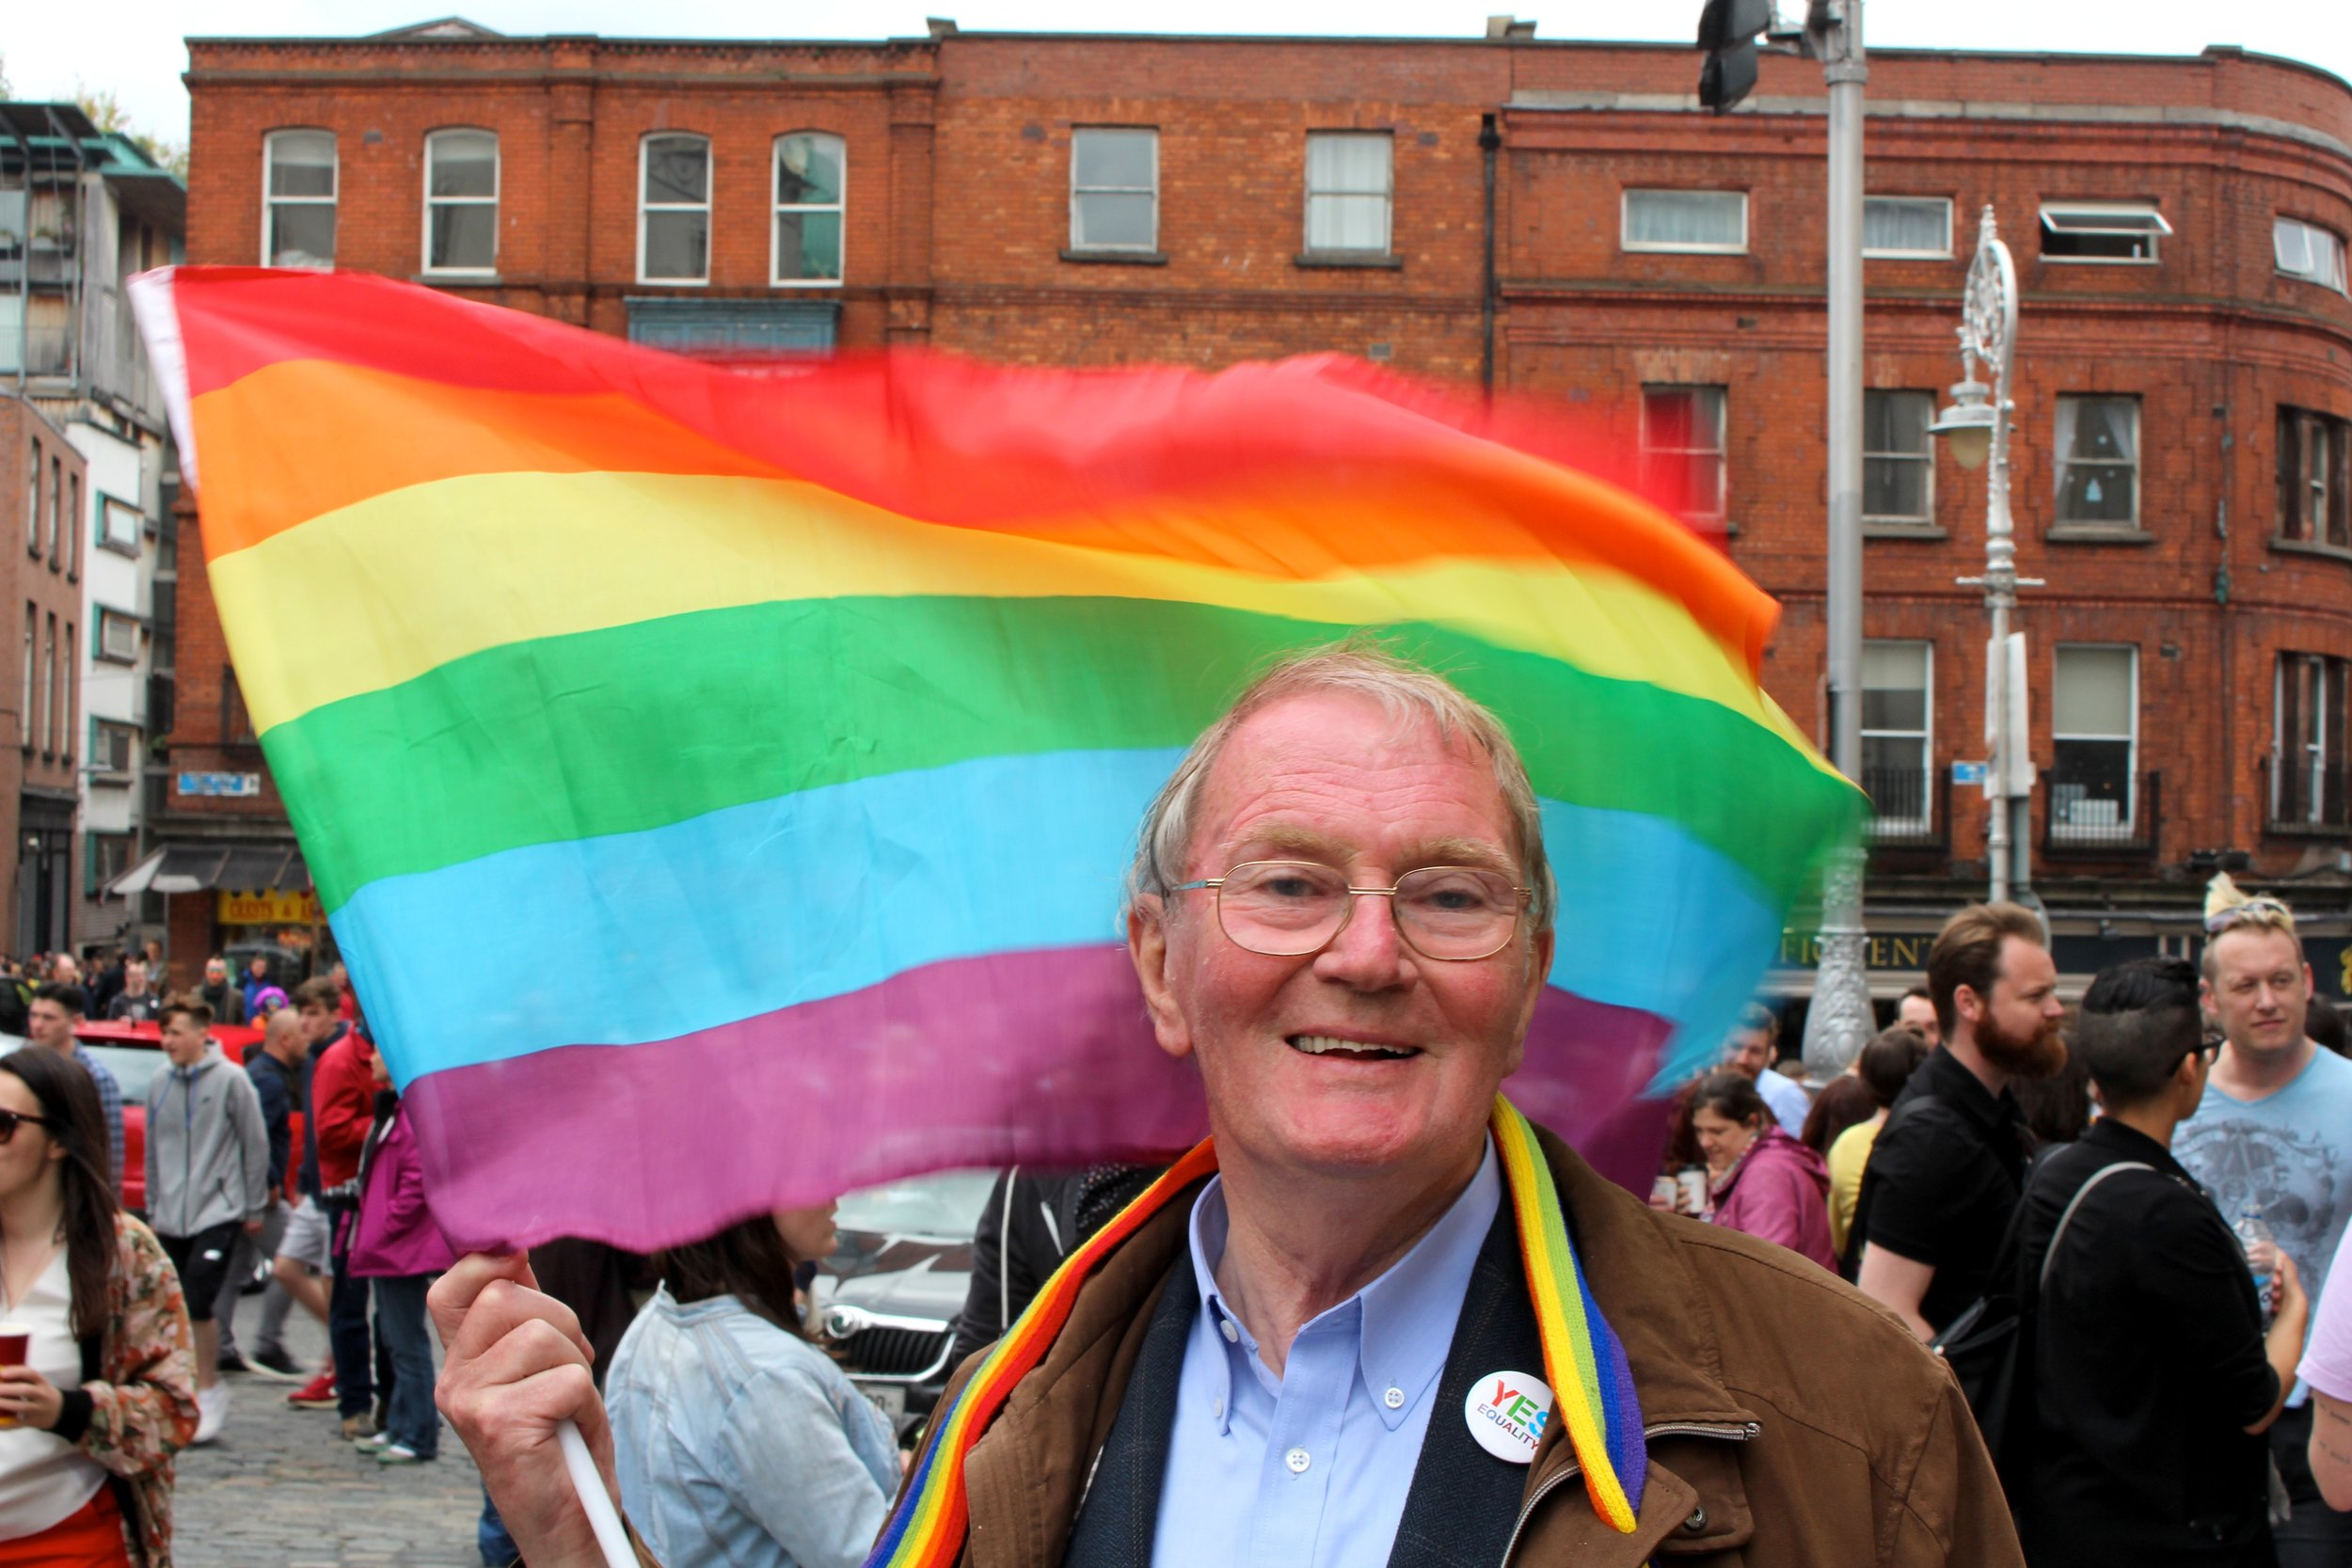 Eighty year-old Charlie Mooney was there with his daughter, and was proud to fly the rainbow flag. Photograph by James Gabriel Martin